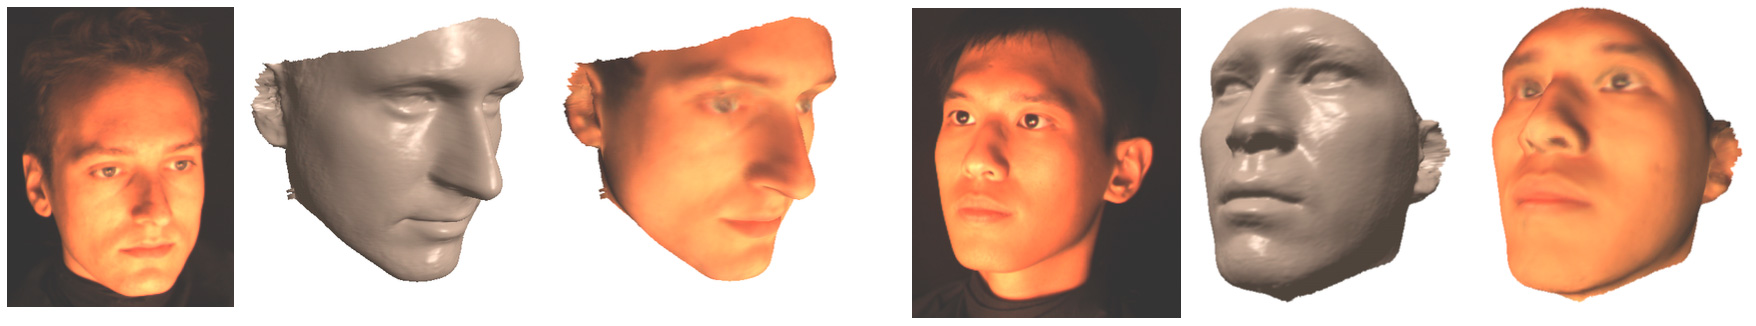 Silhouette-Based 3D Face Shape Recovery